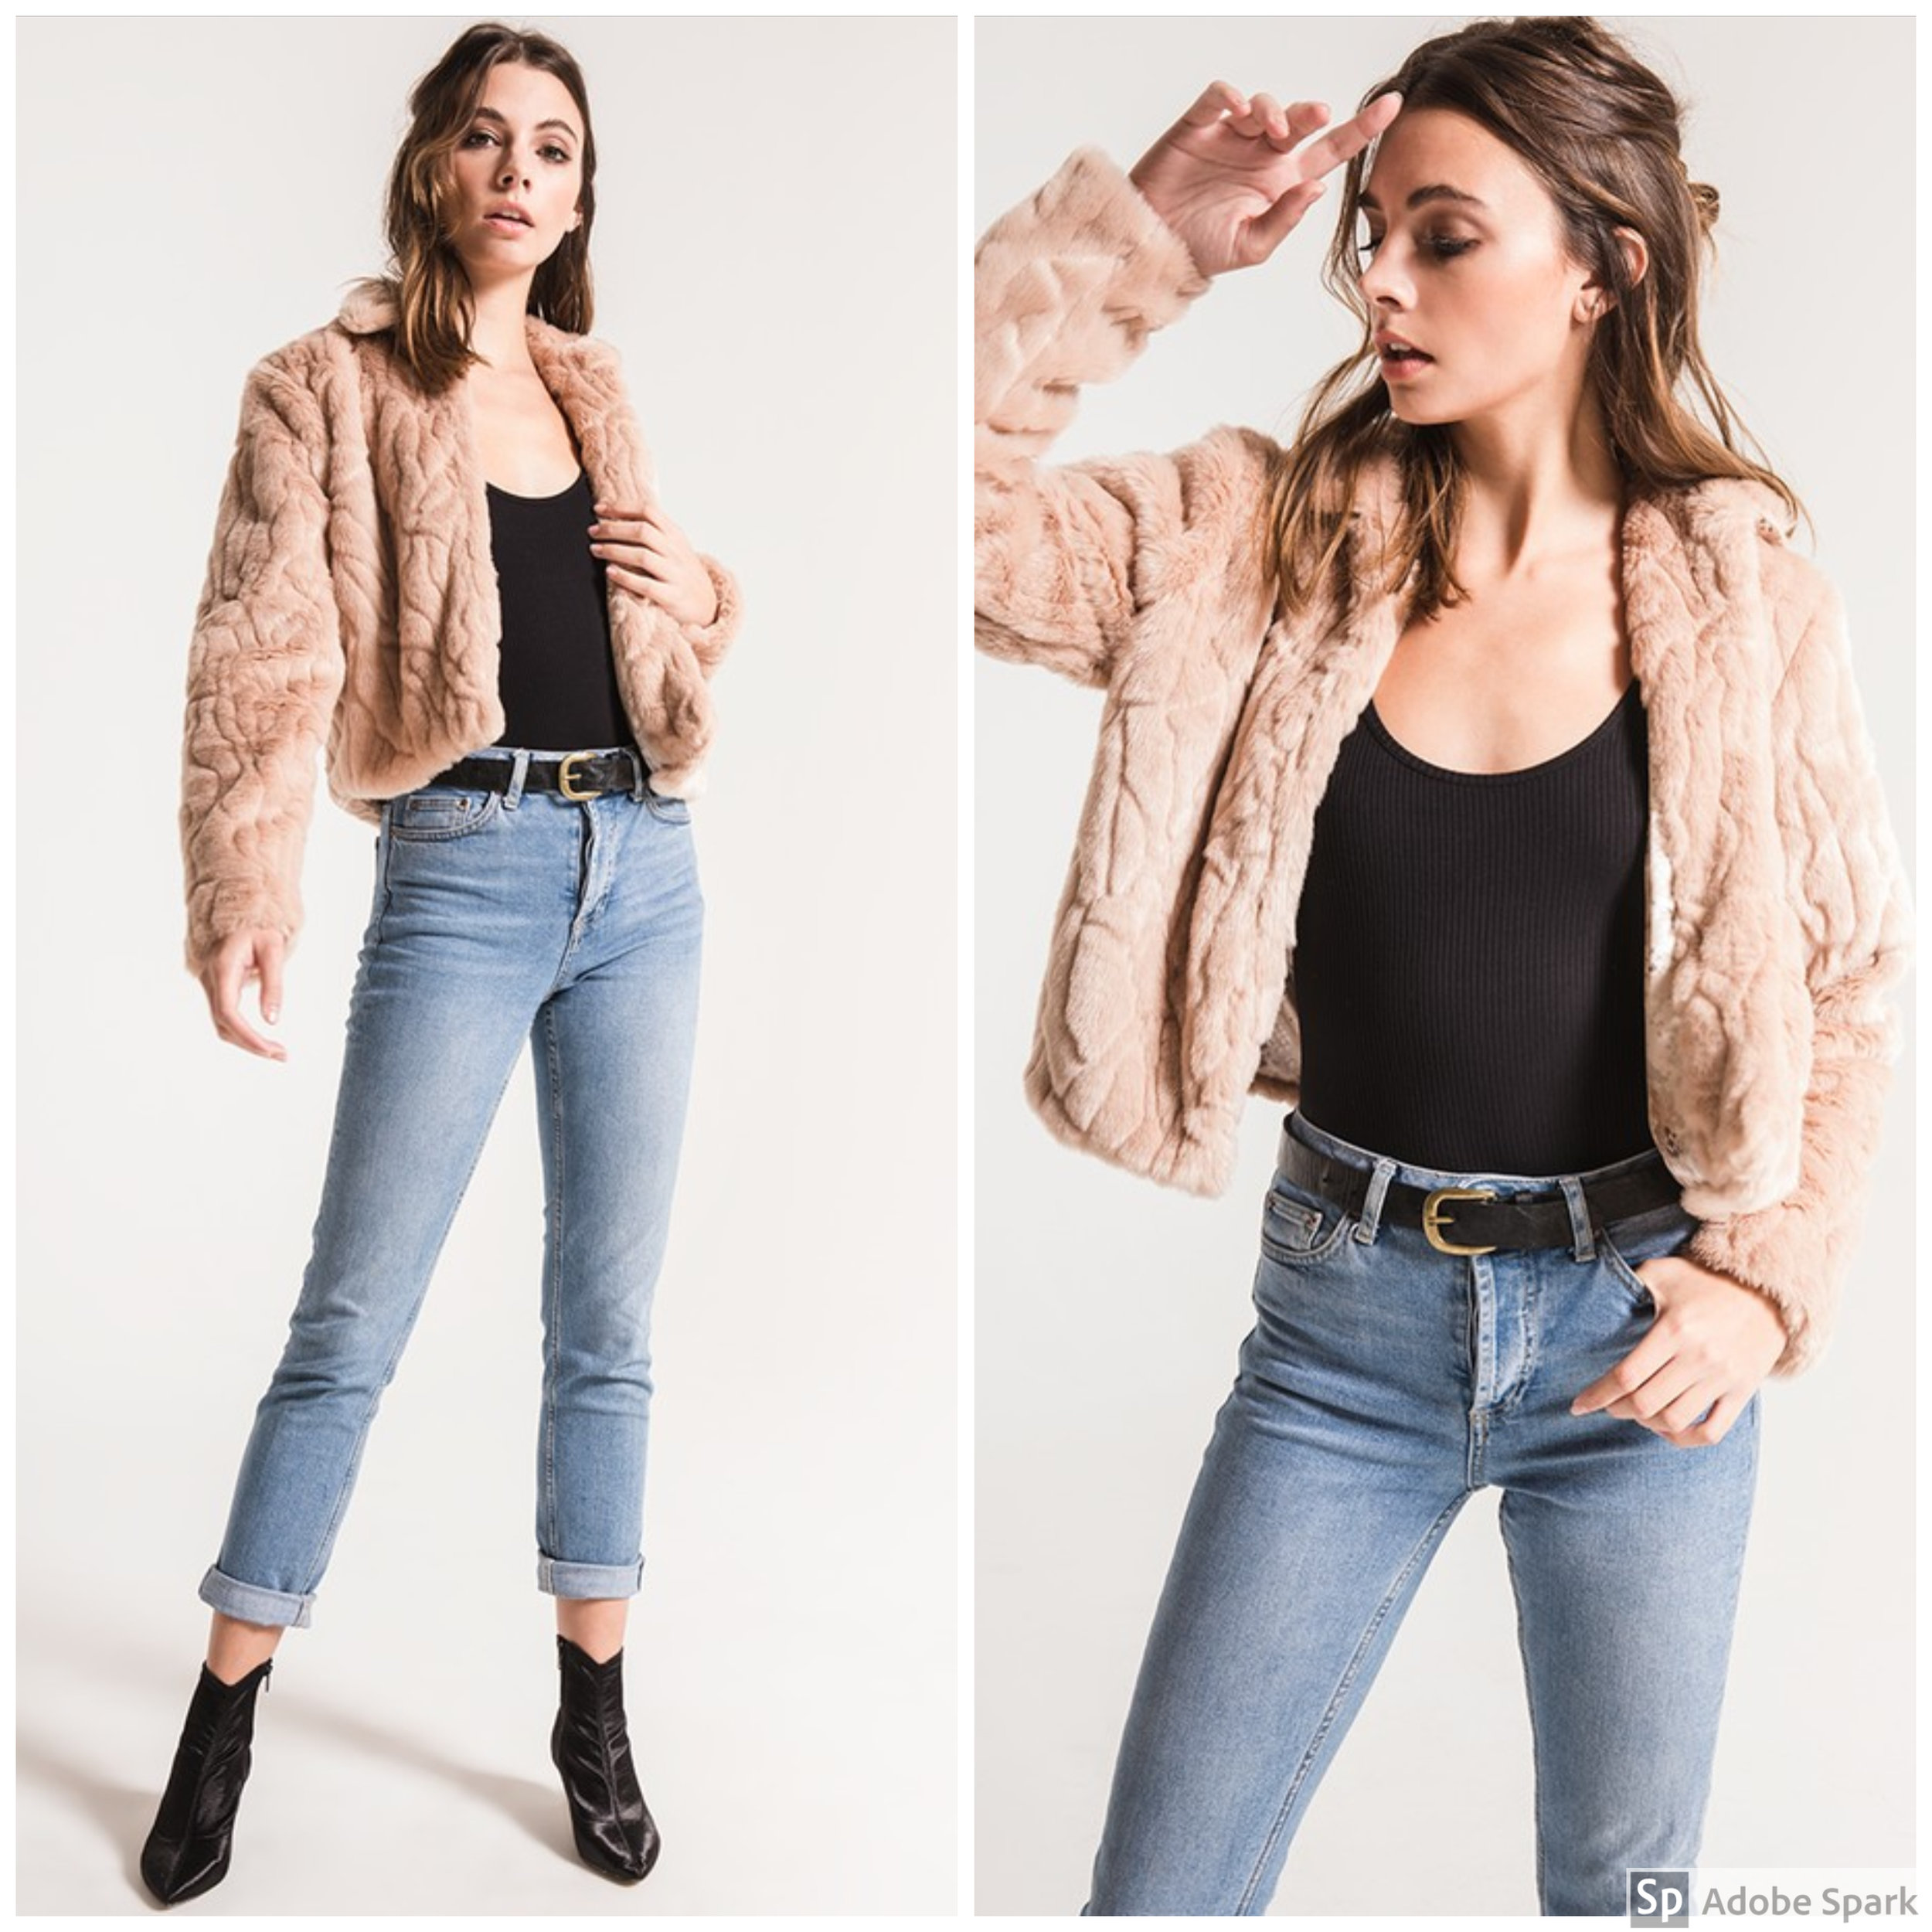 Faux Fur Jacket - Spotlight Features: cropped with soft textured fur and a satin liningWhy You'll Love It: You can throw this jacket on over anything. Worried about getting chilly at that fall wedding you have coming up? This jacket will be perfect over a dress! Or throw it on over a casual top and jeans for regular day-to-day wear.